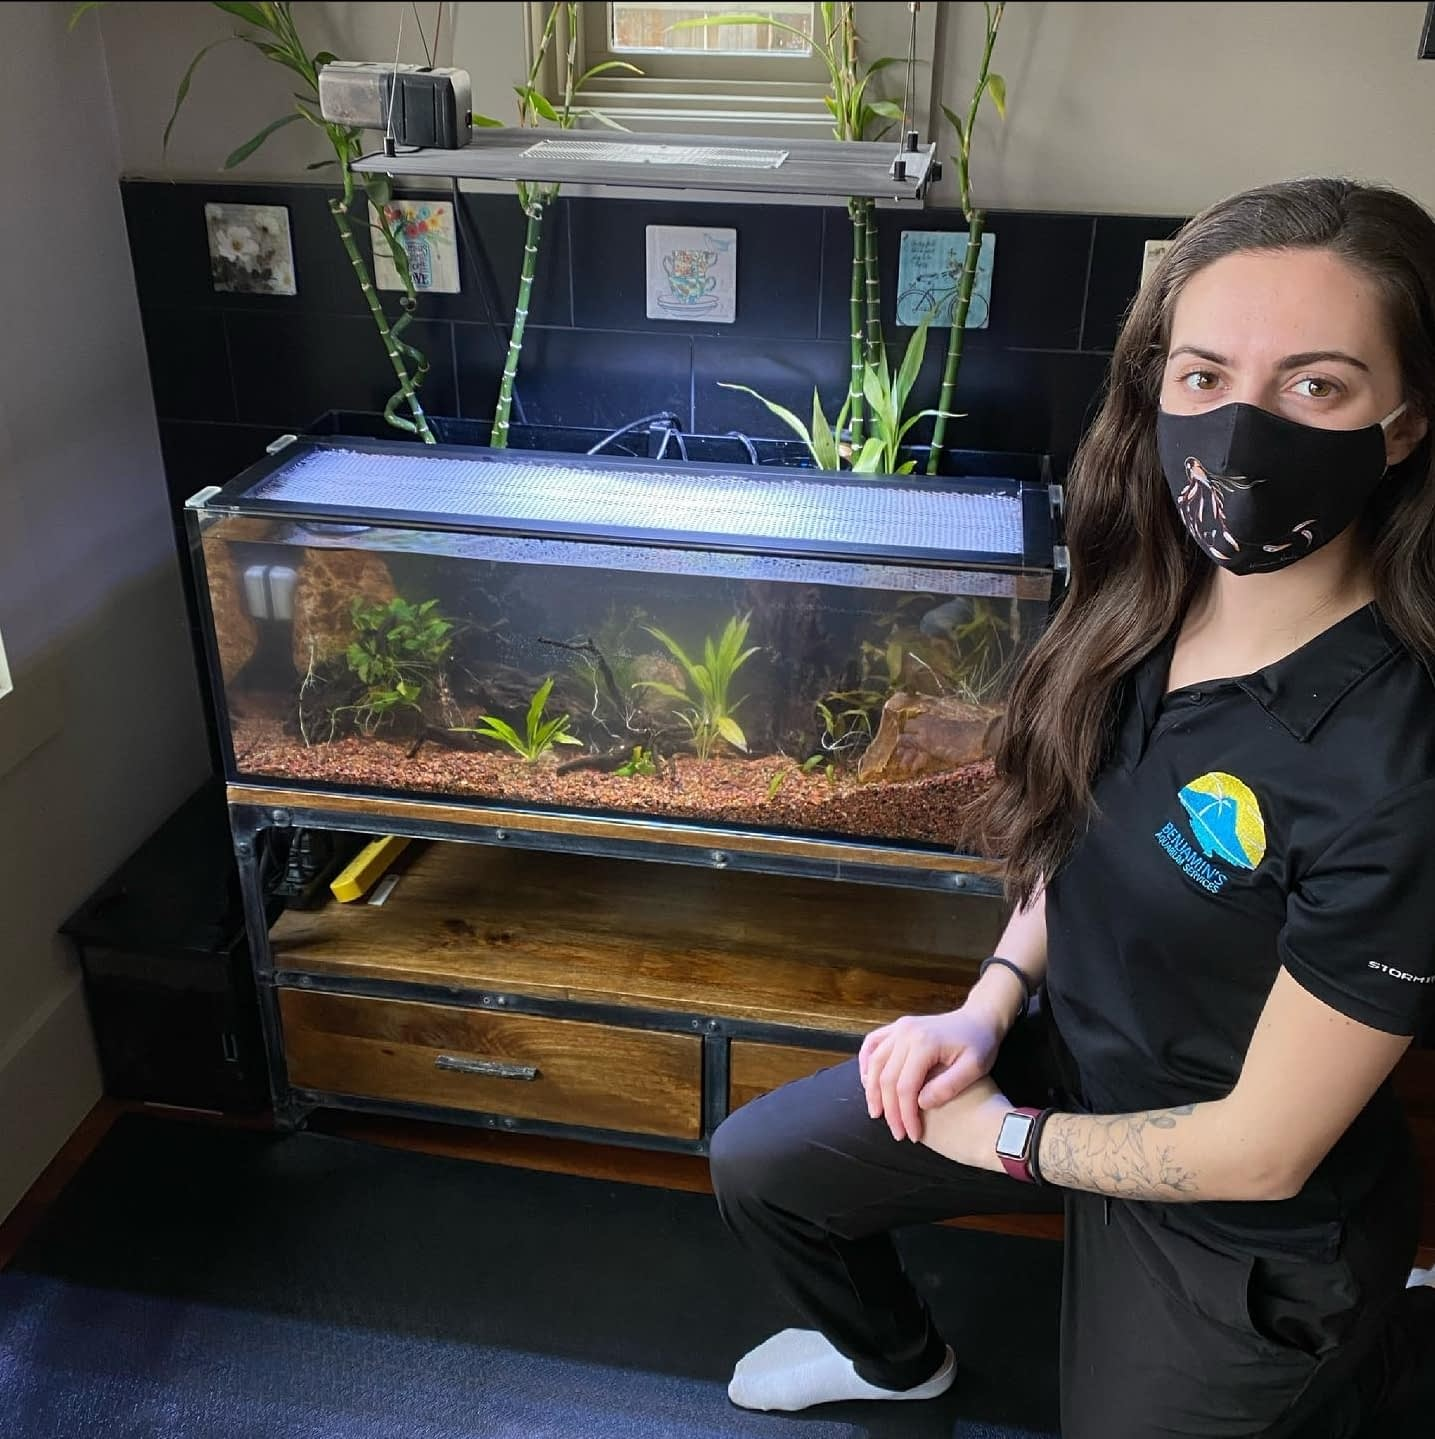 Berklee Finishing Up Cleaning a Fish Tank